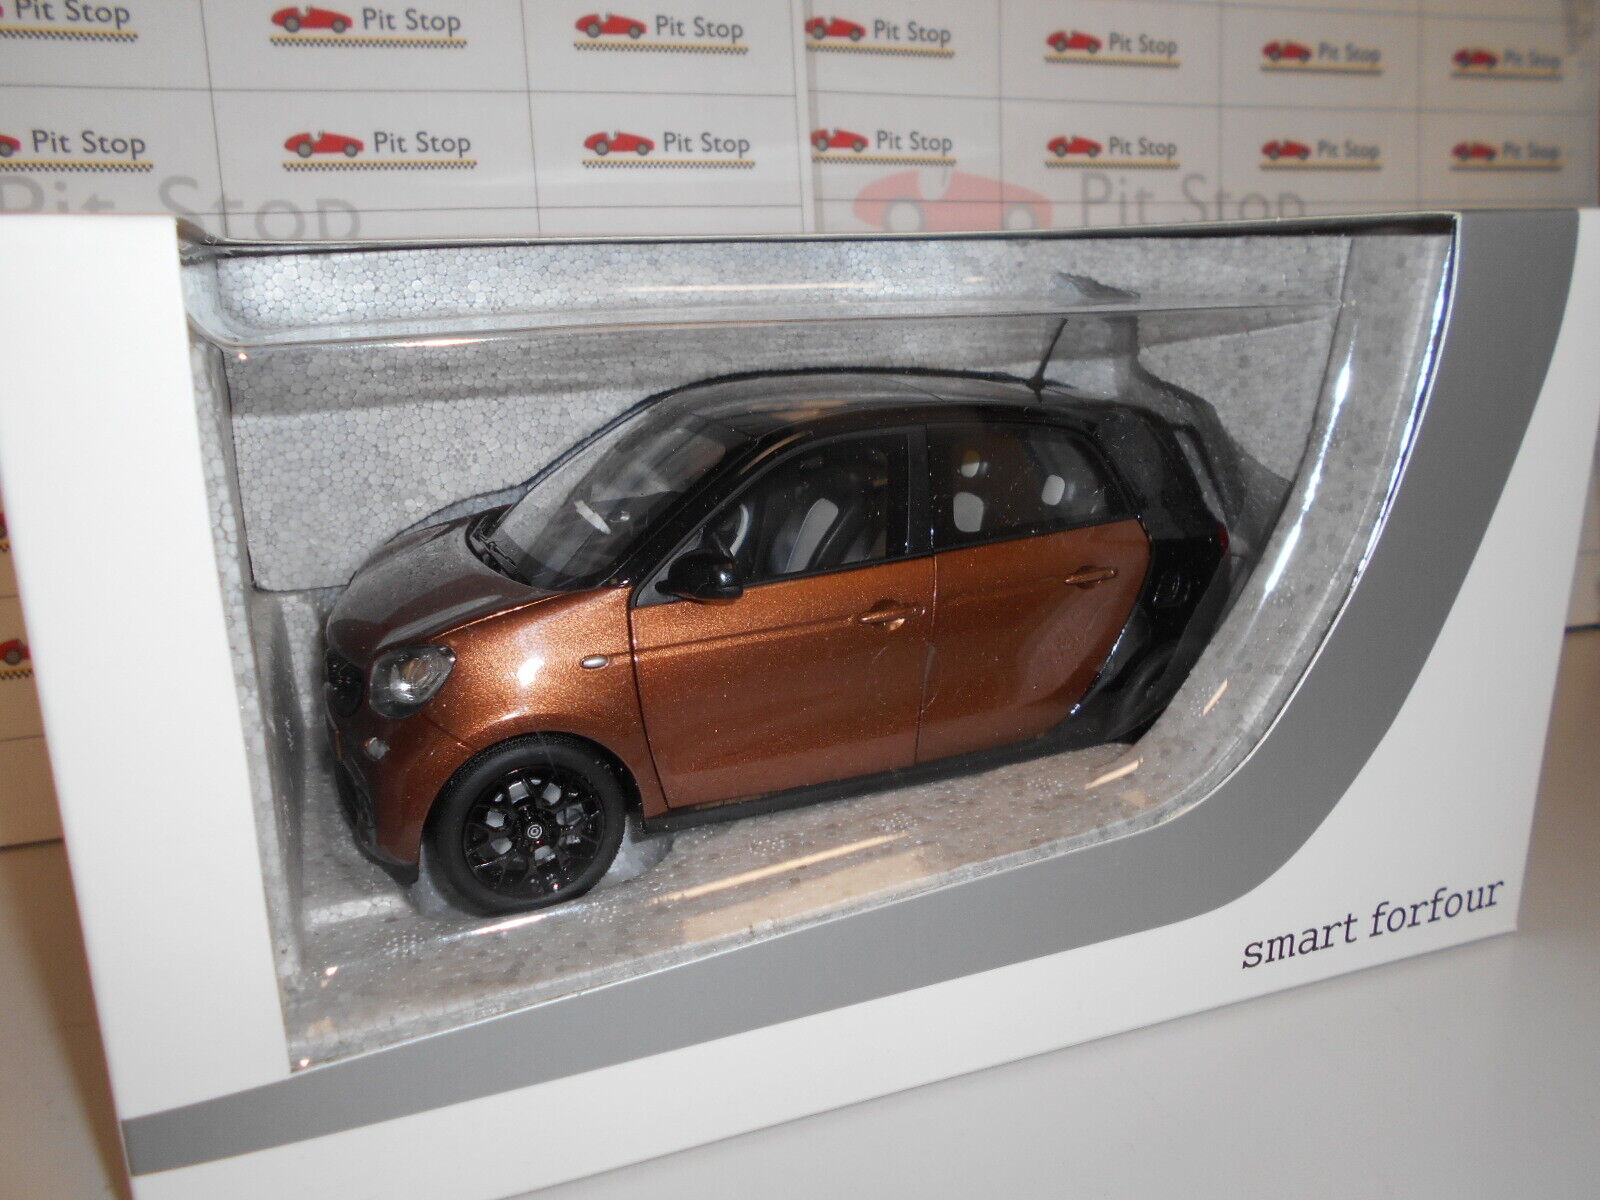 MEIB66960299 by MERCEDES SMART FOURFOUR 2014 1 18